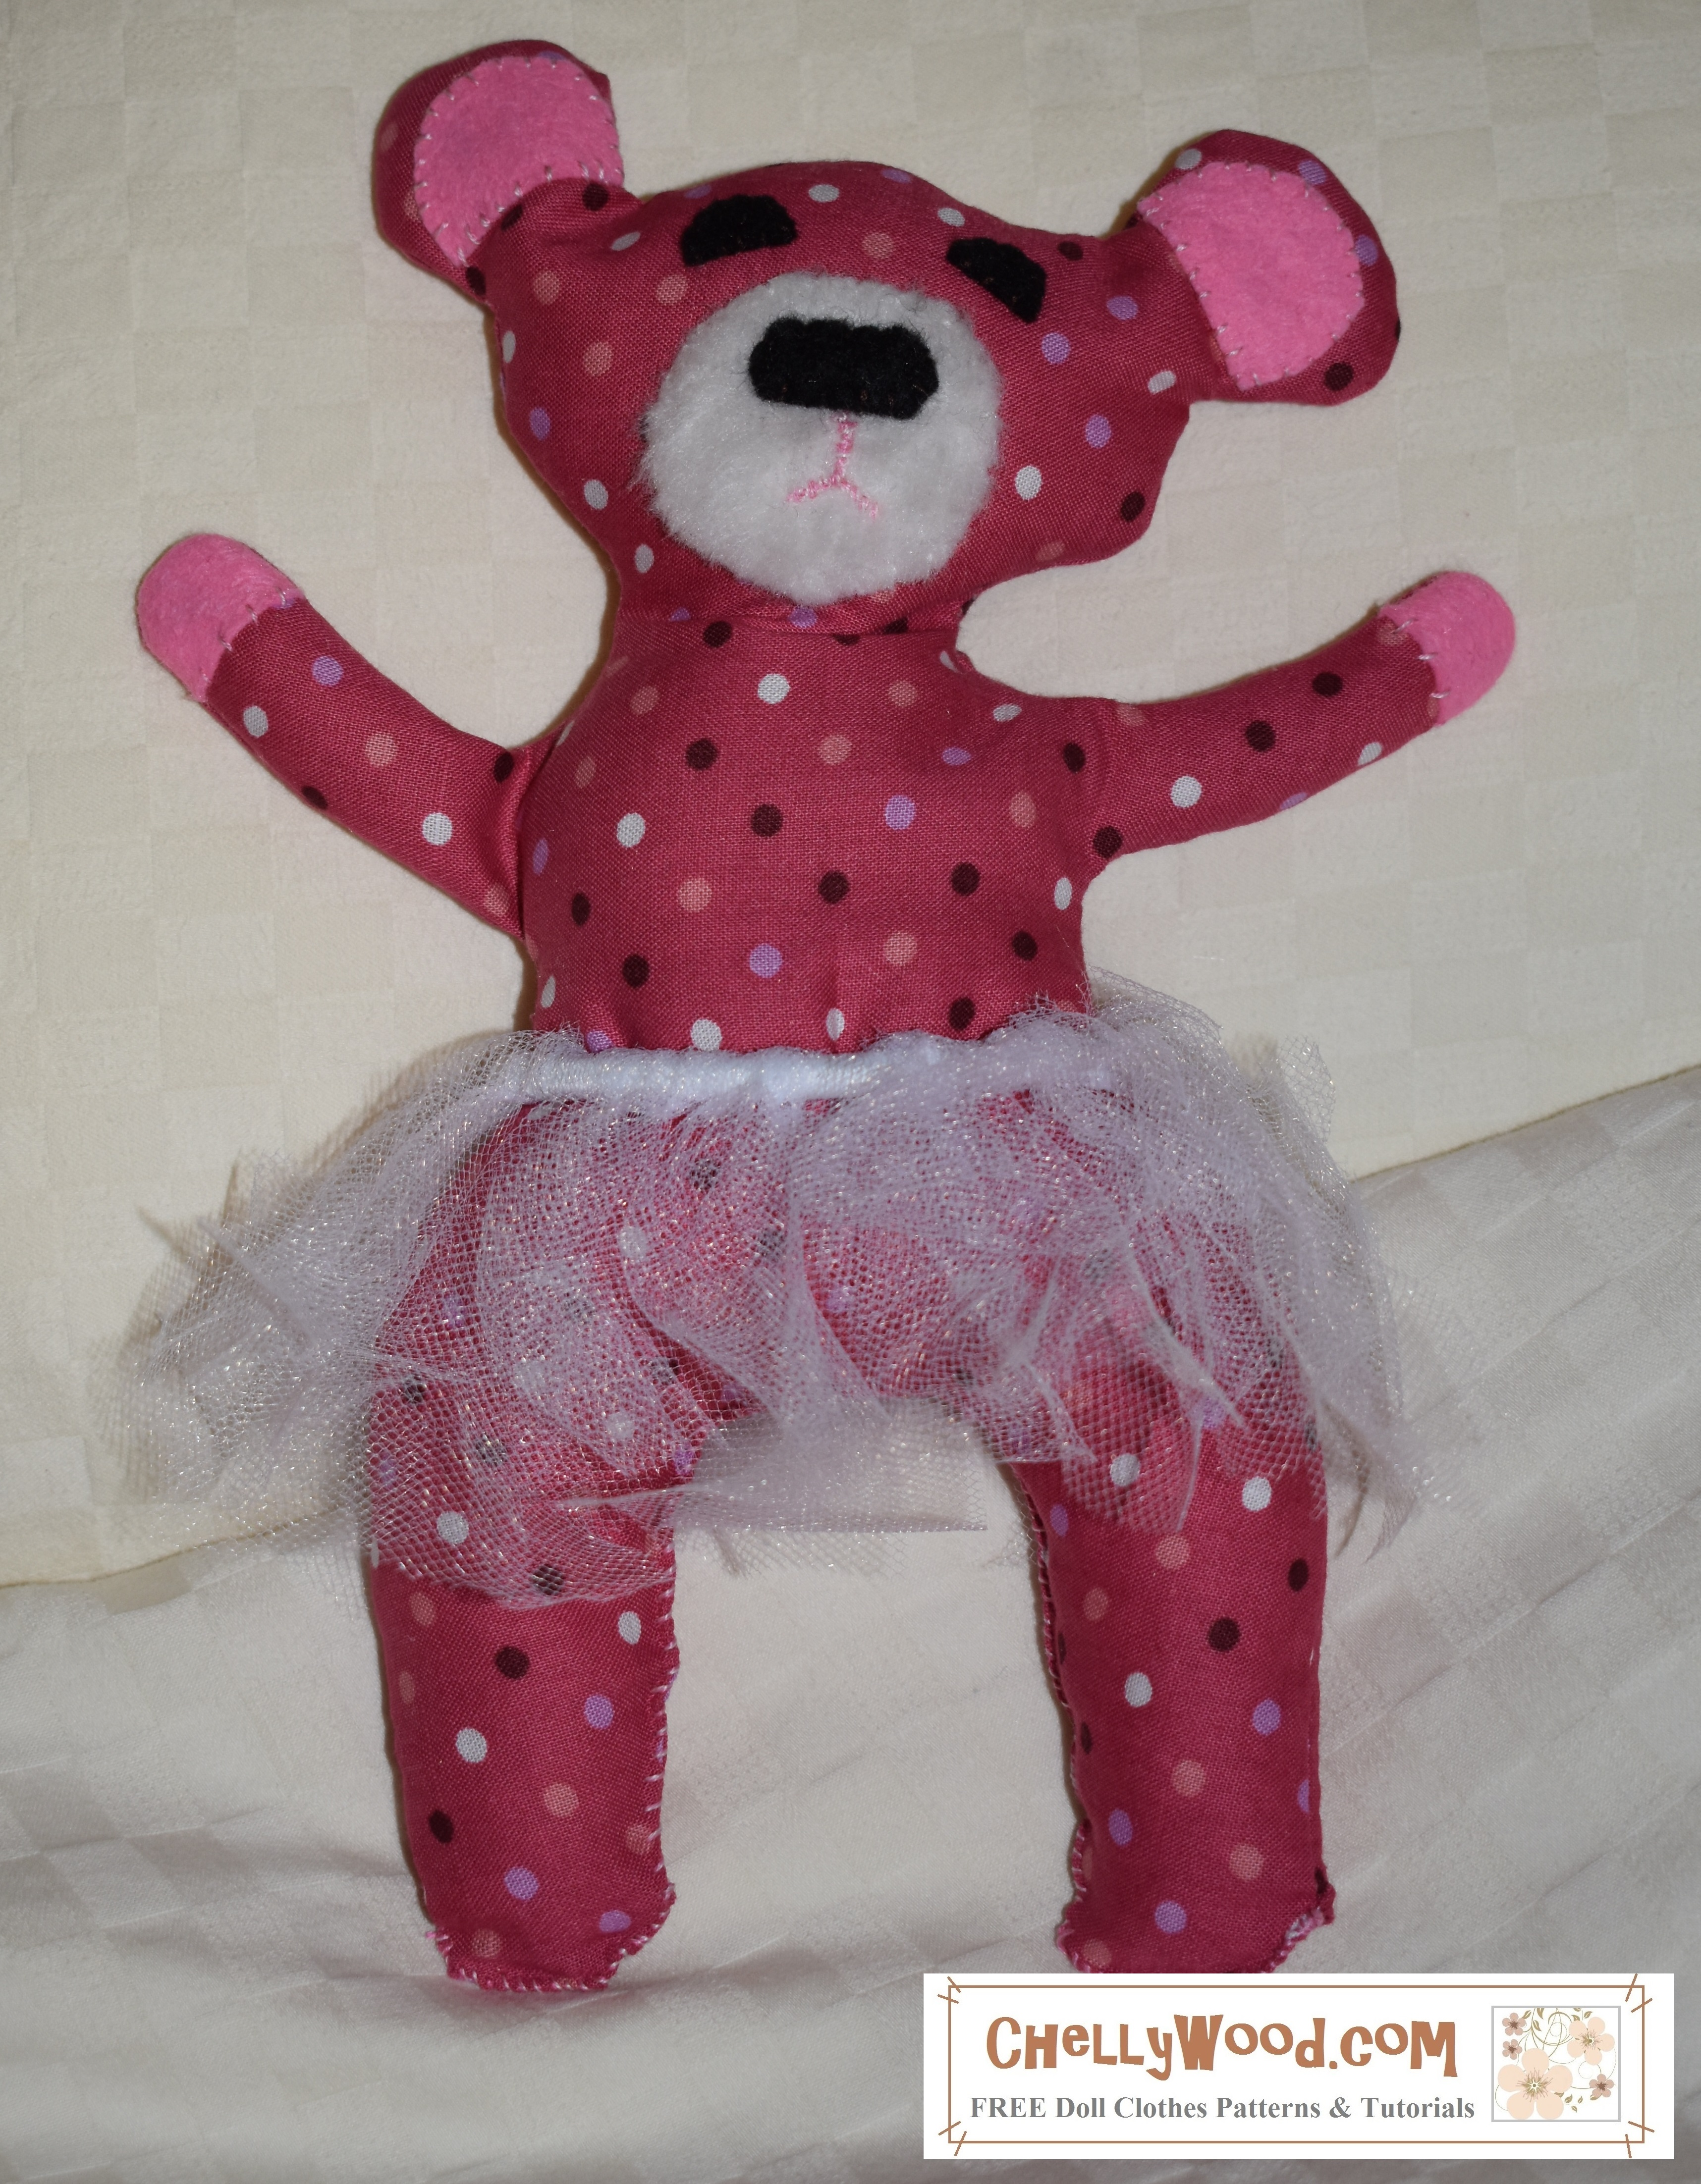 image regarding Free Printable Stuffed Animal Patterns titled undergo plushie Absolutely free Doll Garments Designs